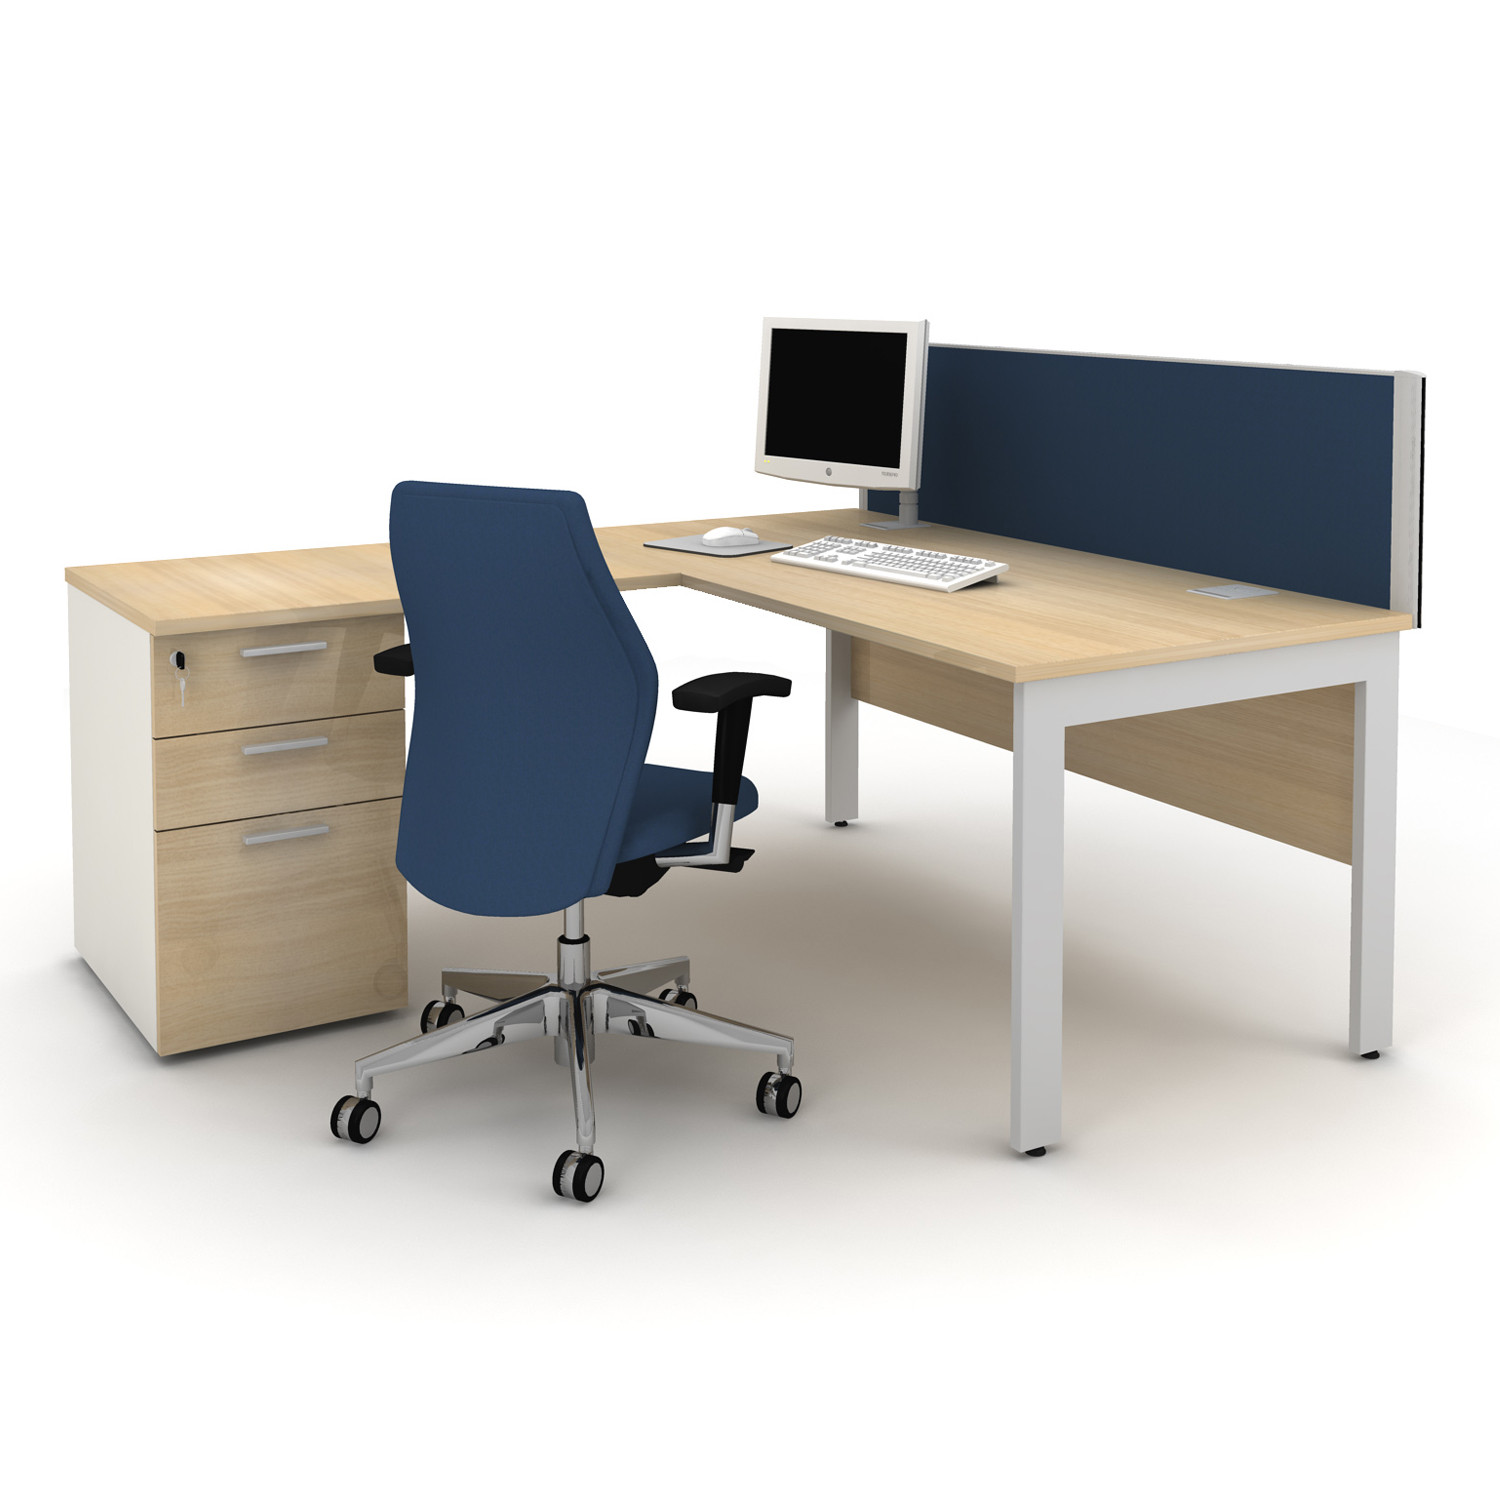 images office furniture. Office Desk. Qore Work Desk Images Furniture L